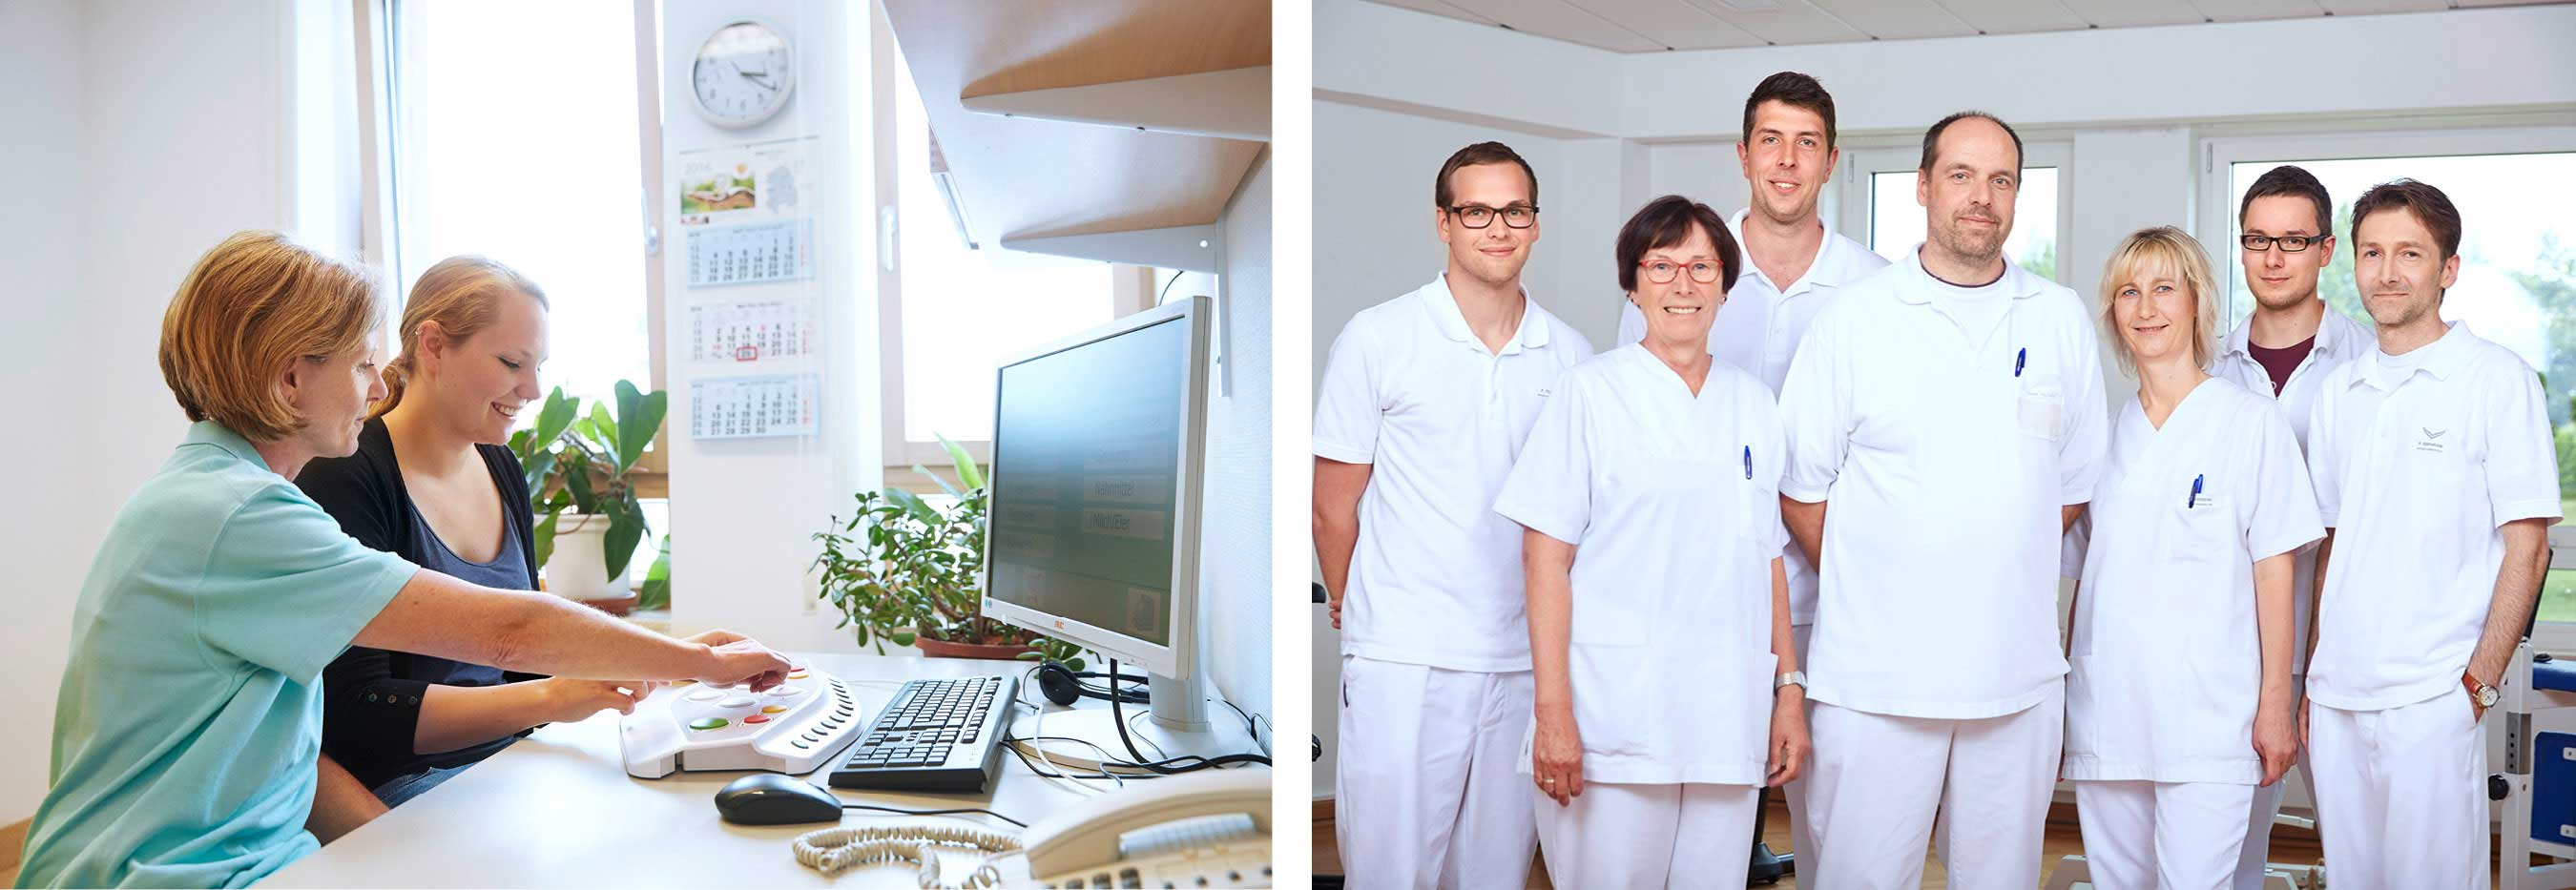 Physiotherapie und Ergotherapie